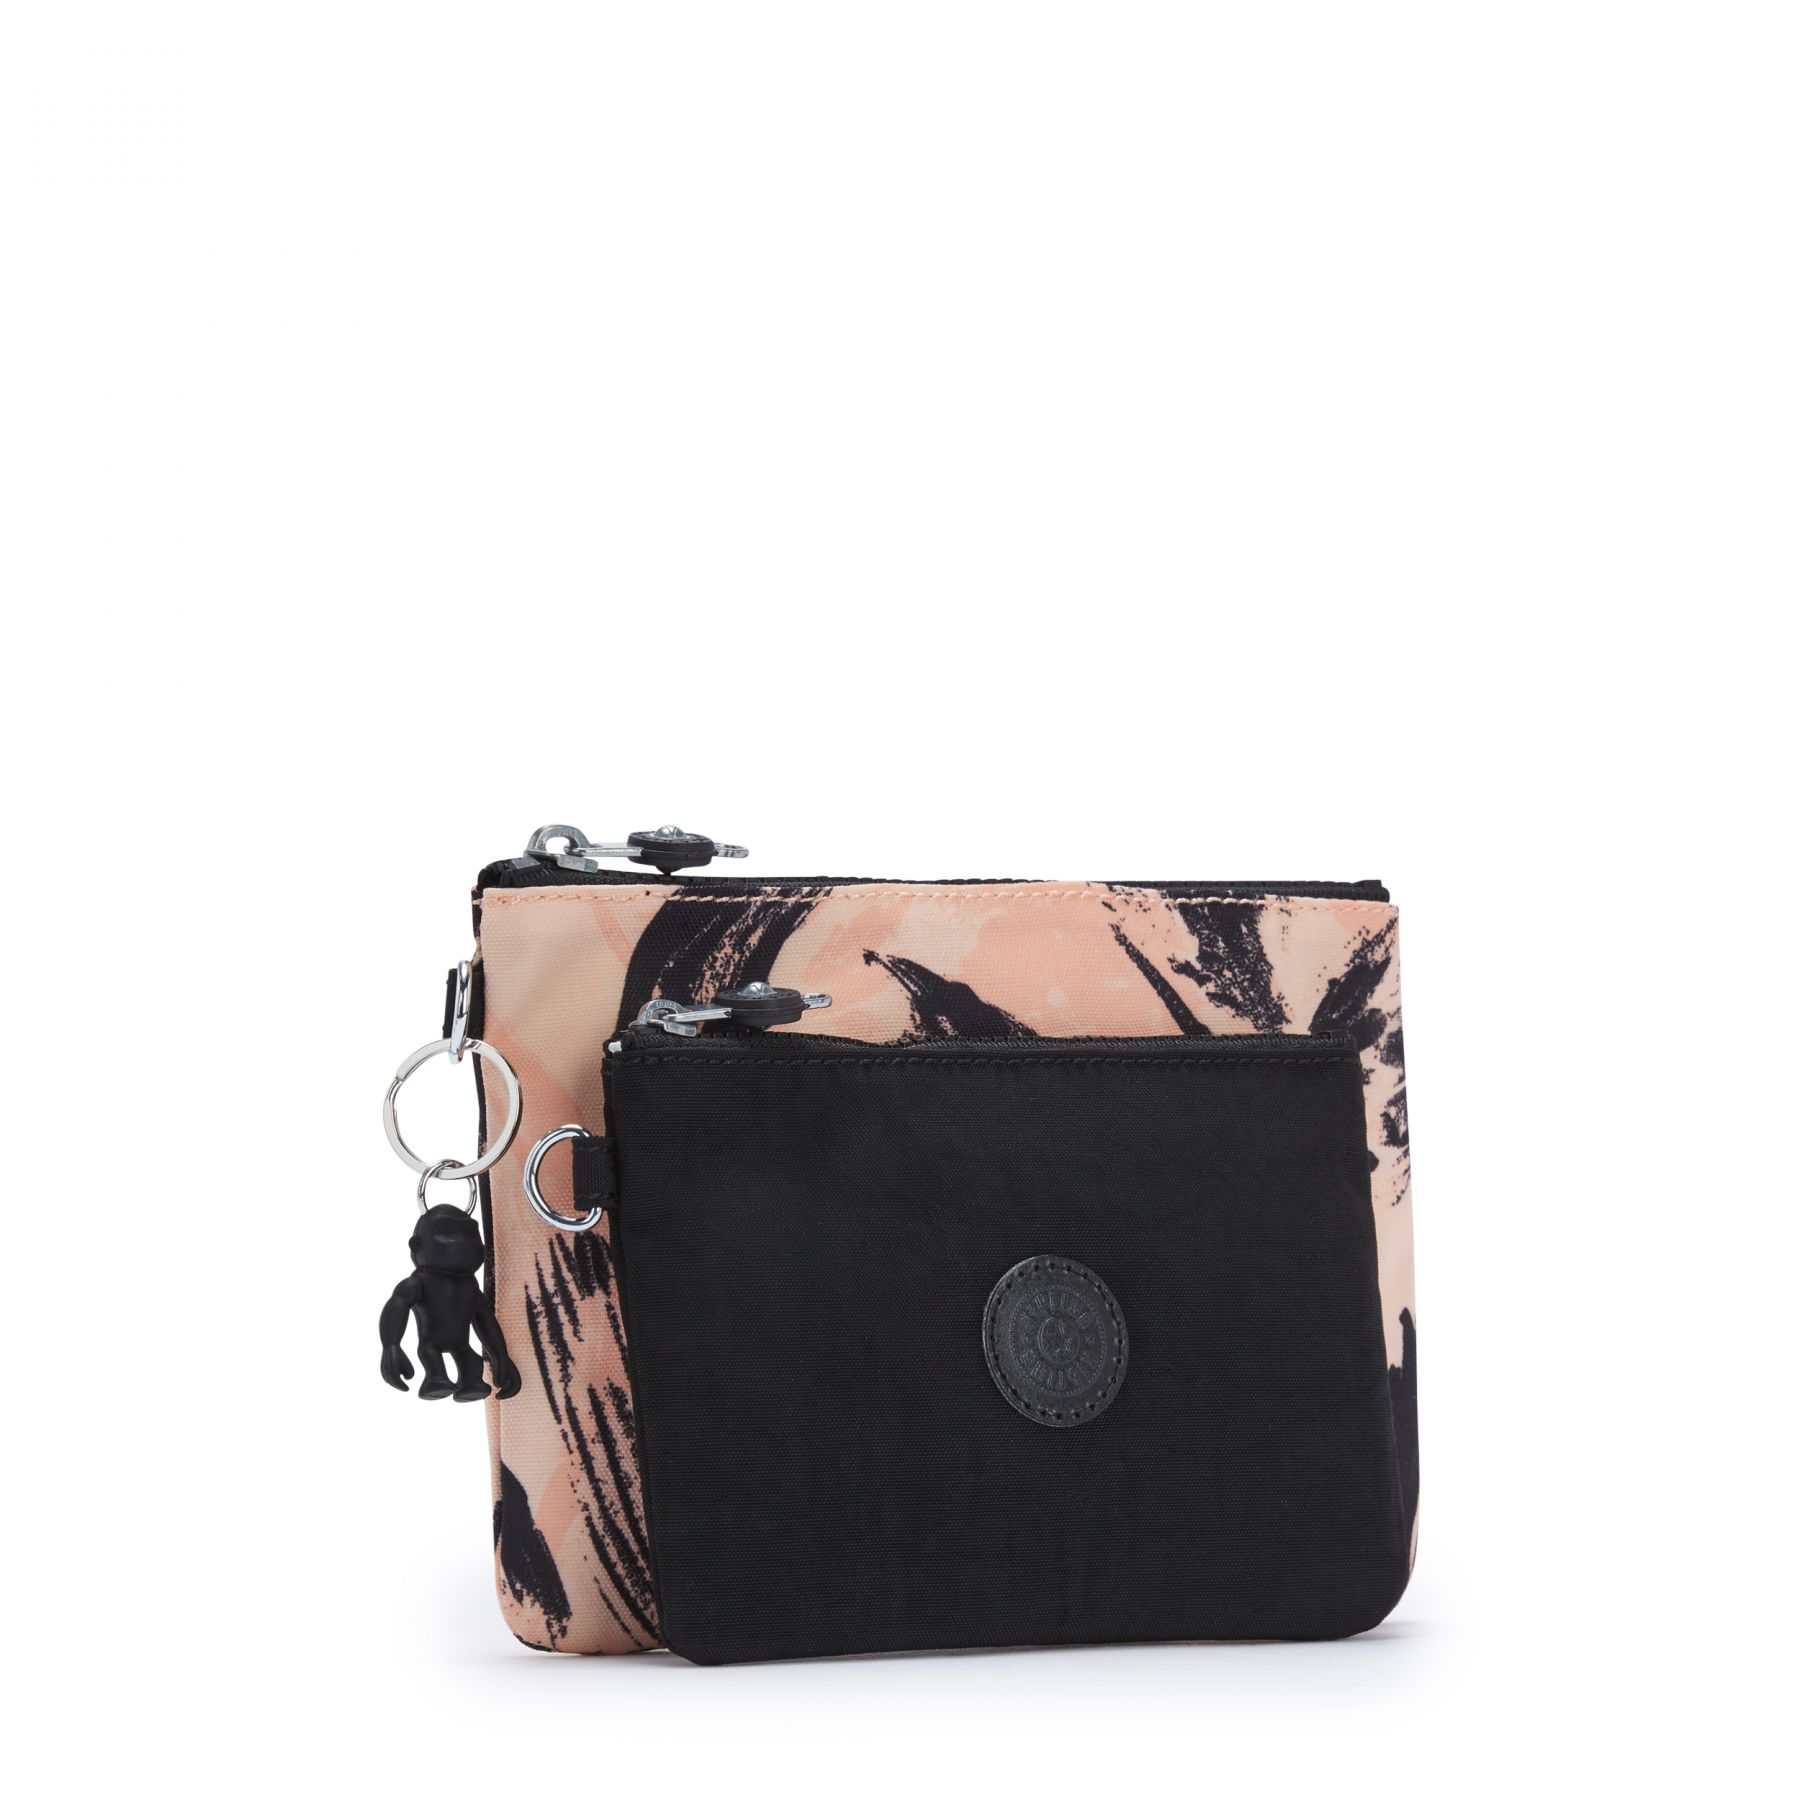 DUO POUCH ACCESSORIES by Kipling